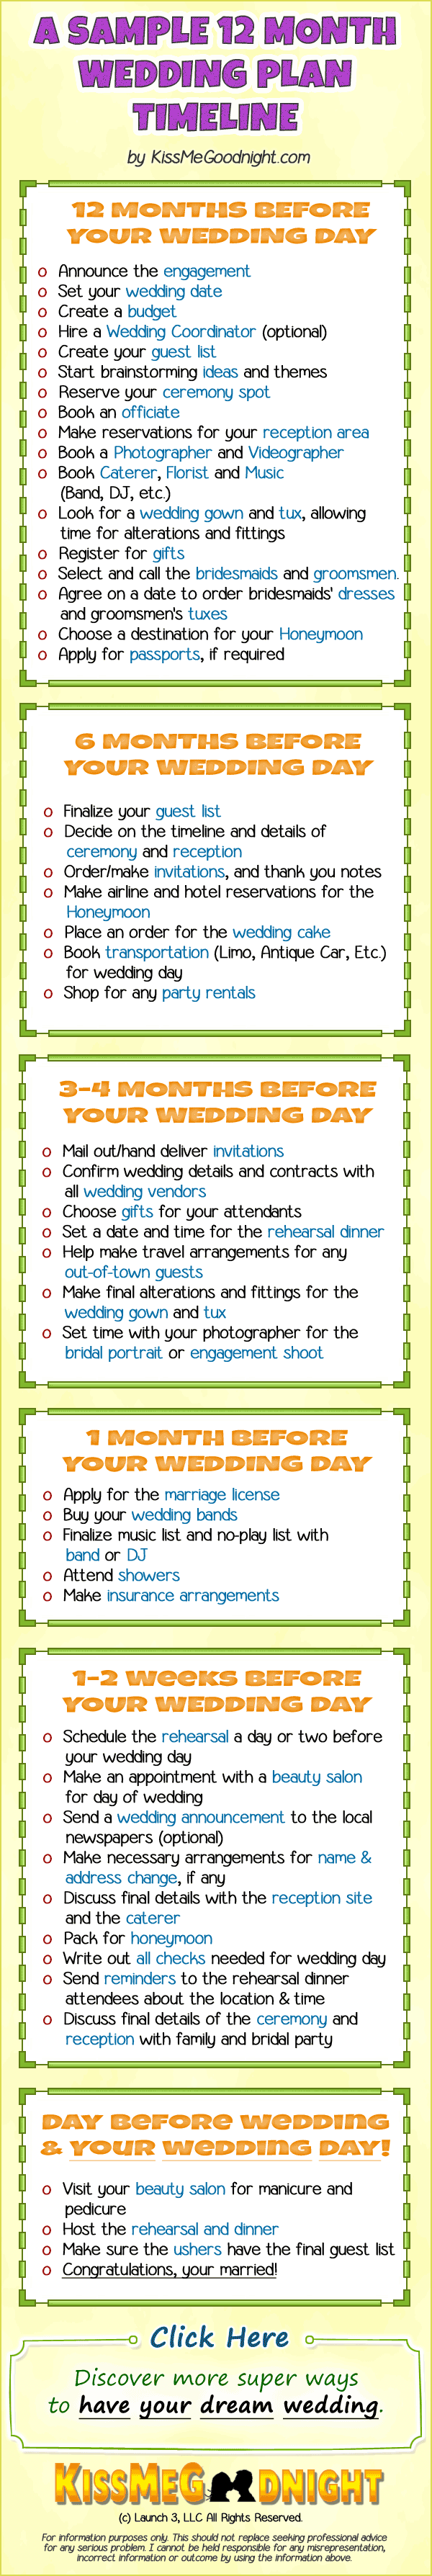 Sample 12 Month Wedding Plan Timeline